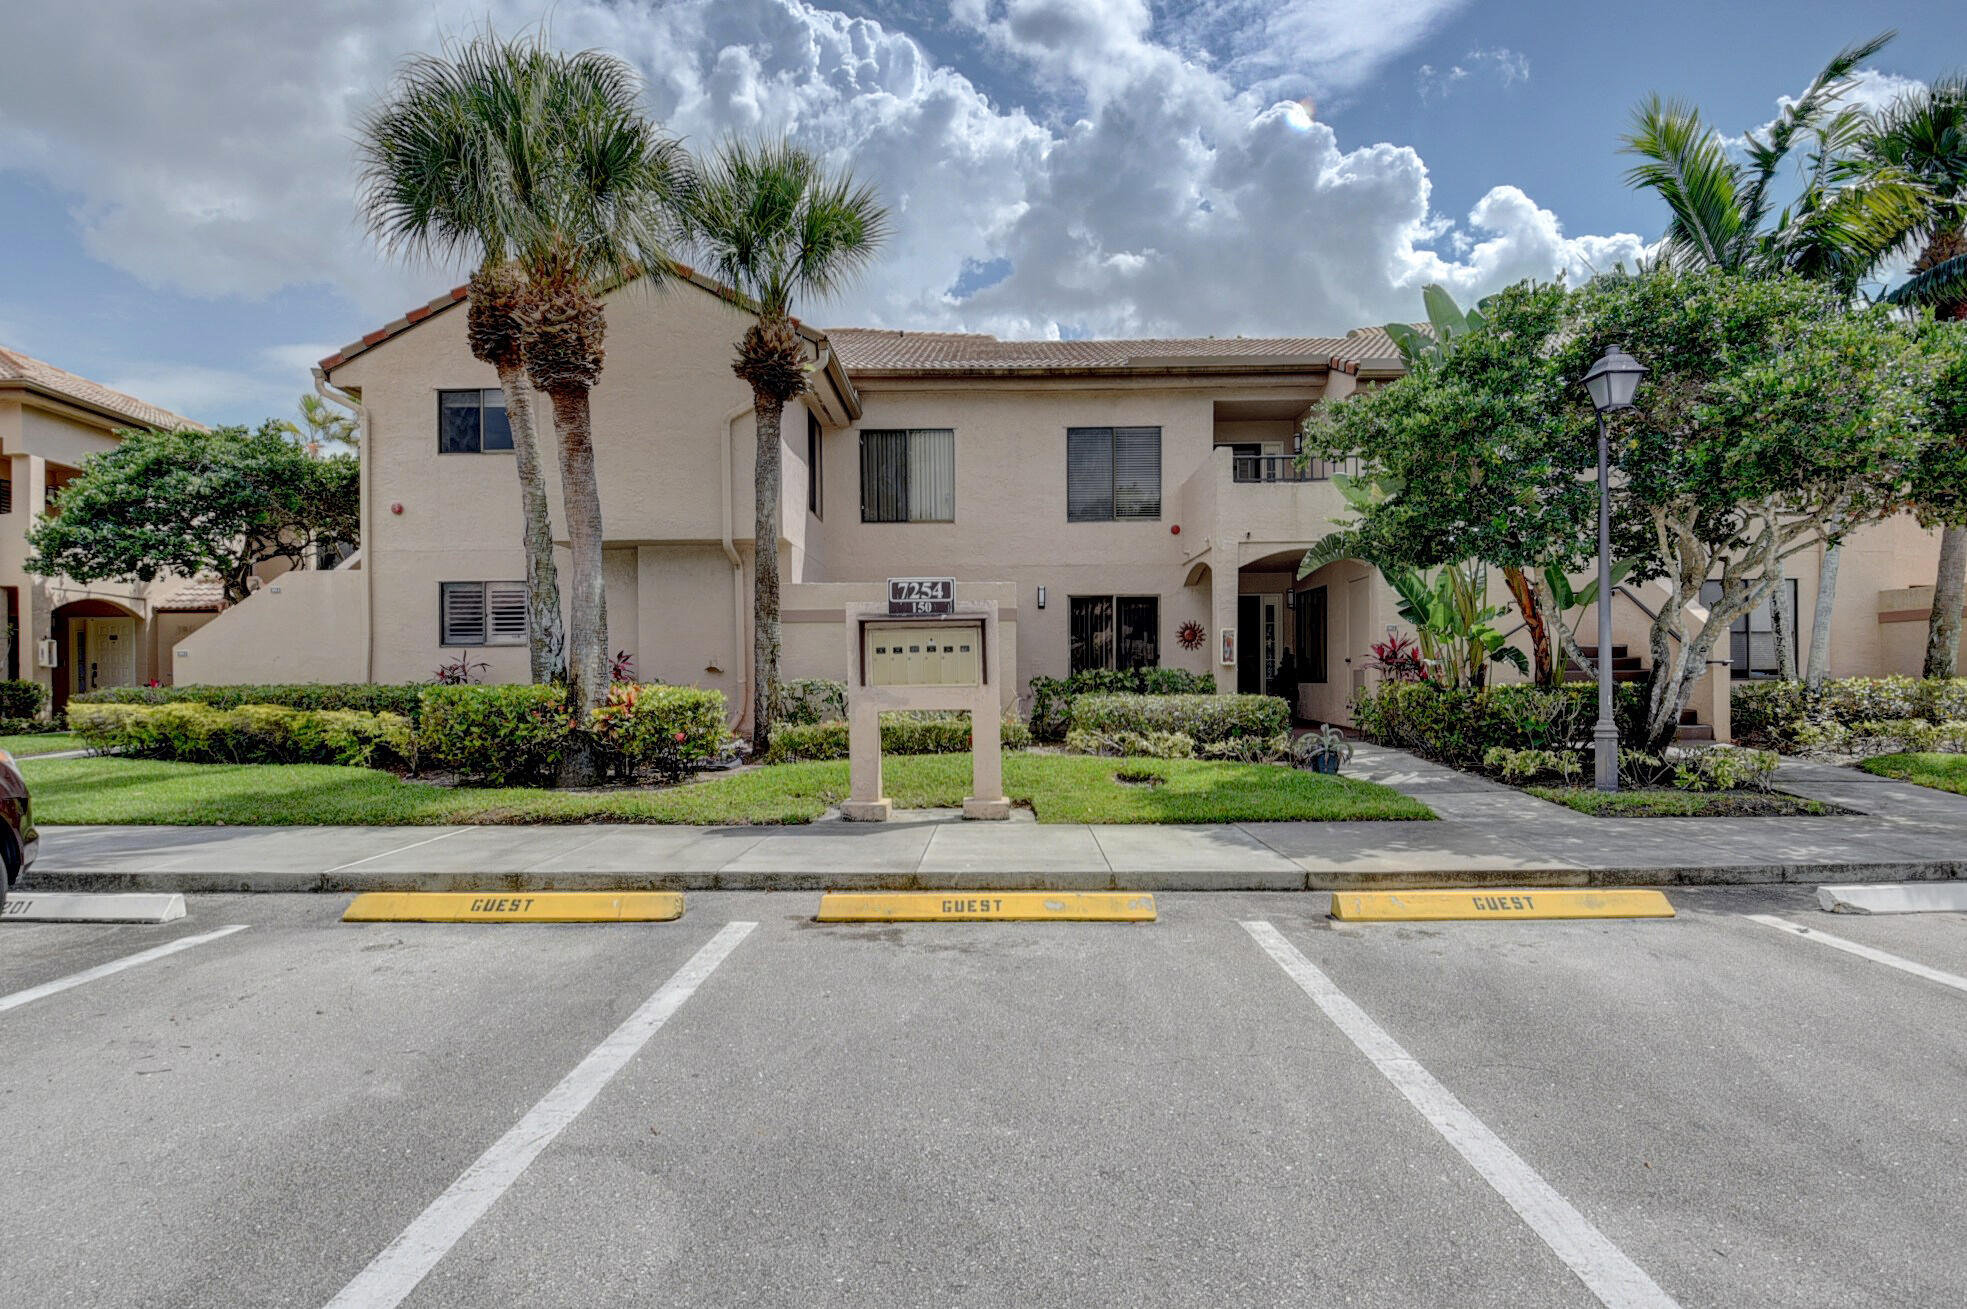 7254  Clunie Place 15003 For Sale 10709068, FL